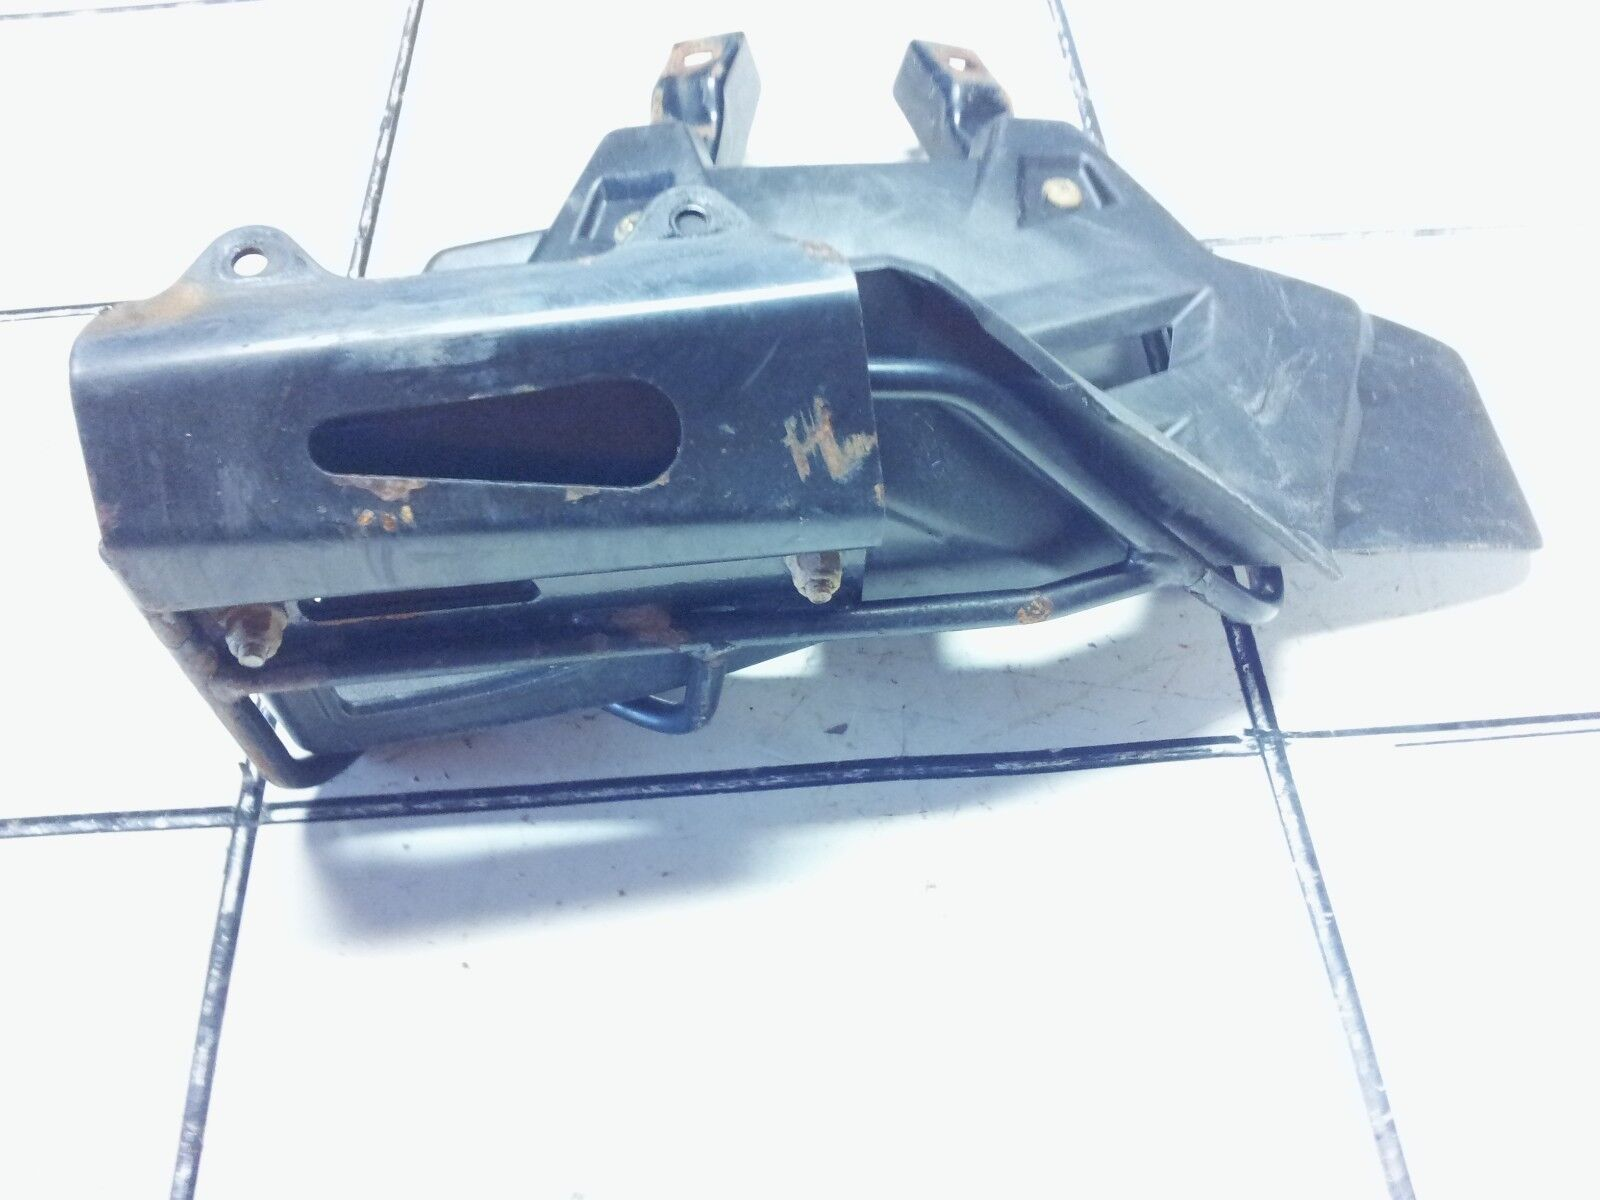 2003-2007 PREDATOR 500 OEM LEFT FOOT HEEL GUARD HEELGUARD W/ MOUNT 5434432-070